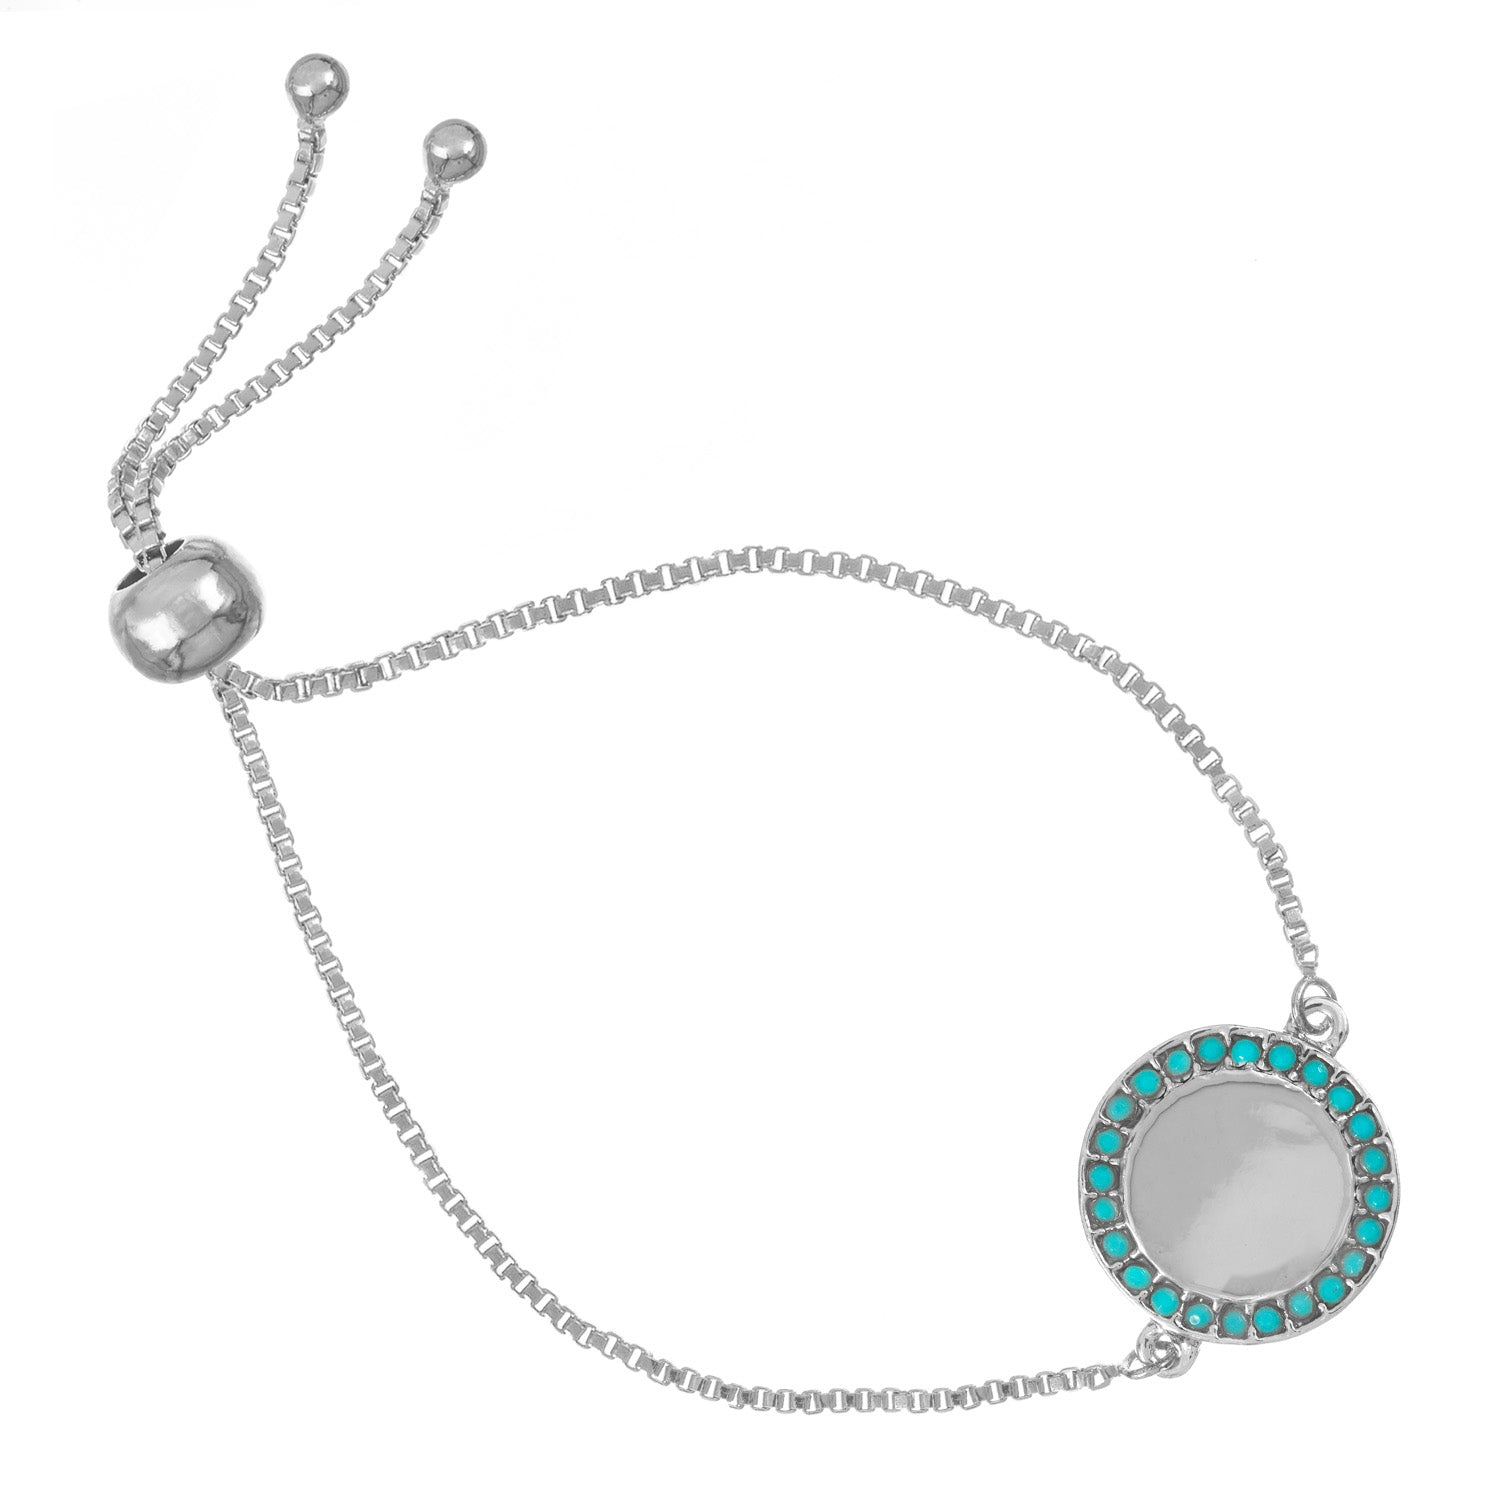 Belle & Beau Riviera Toggle Bracelet - MissieMay